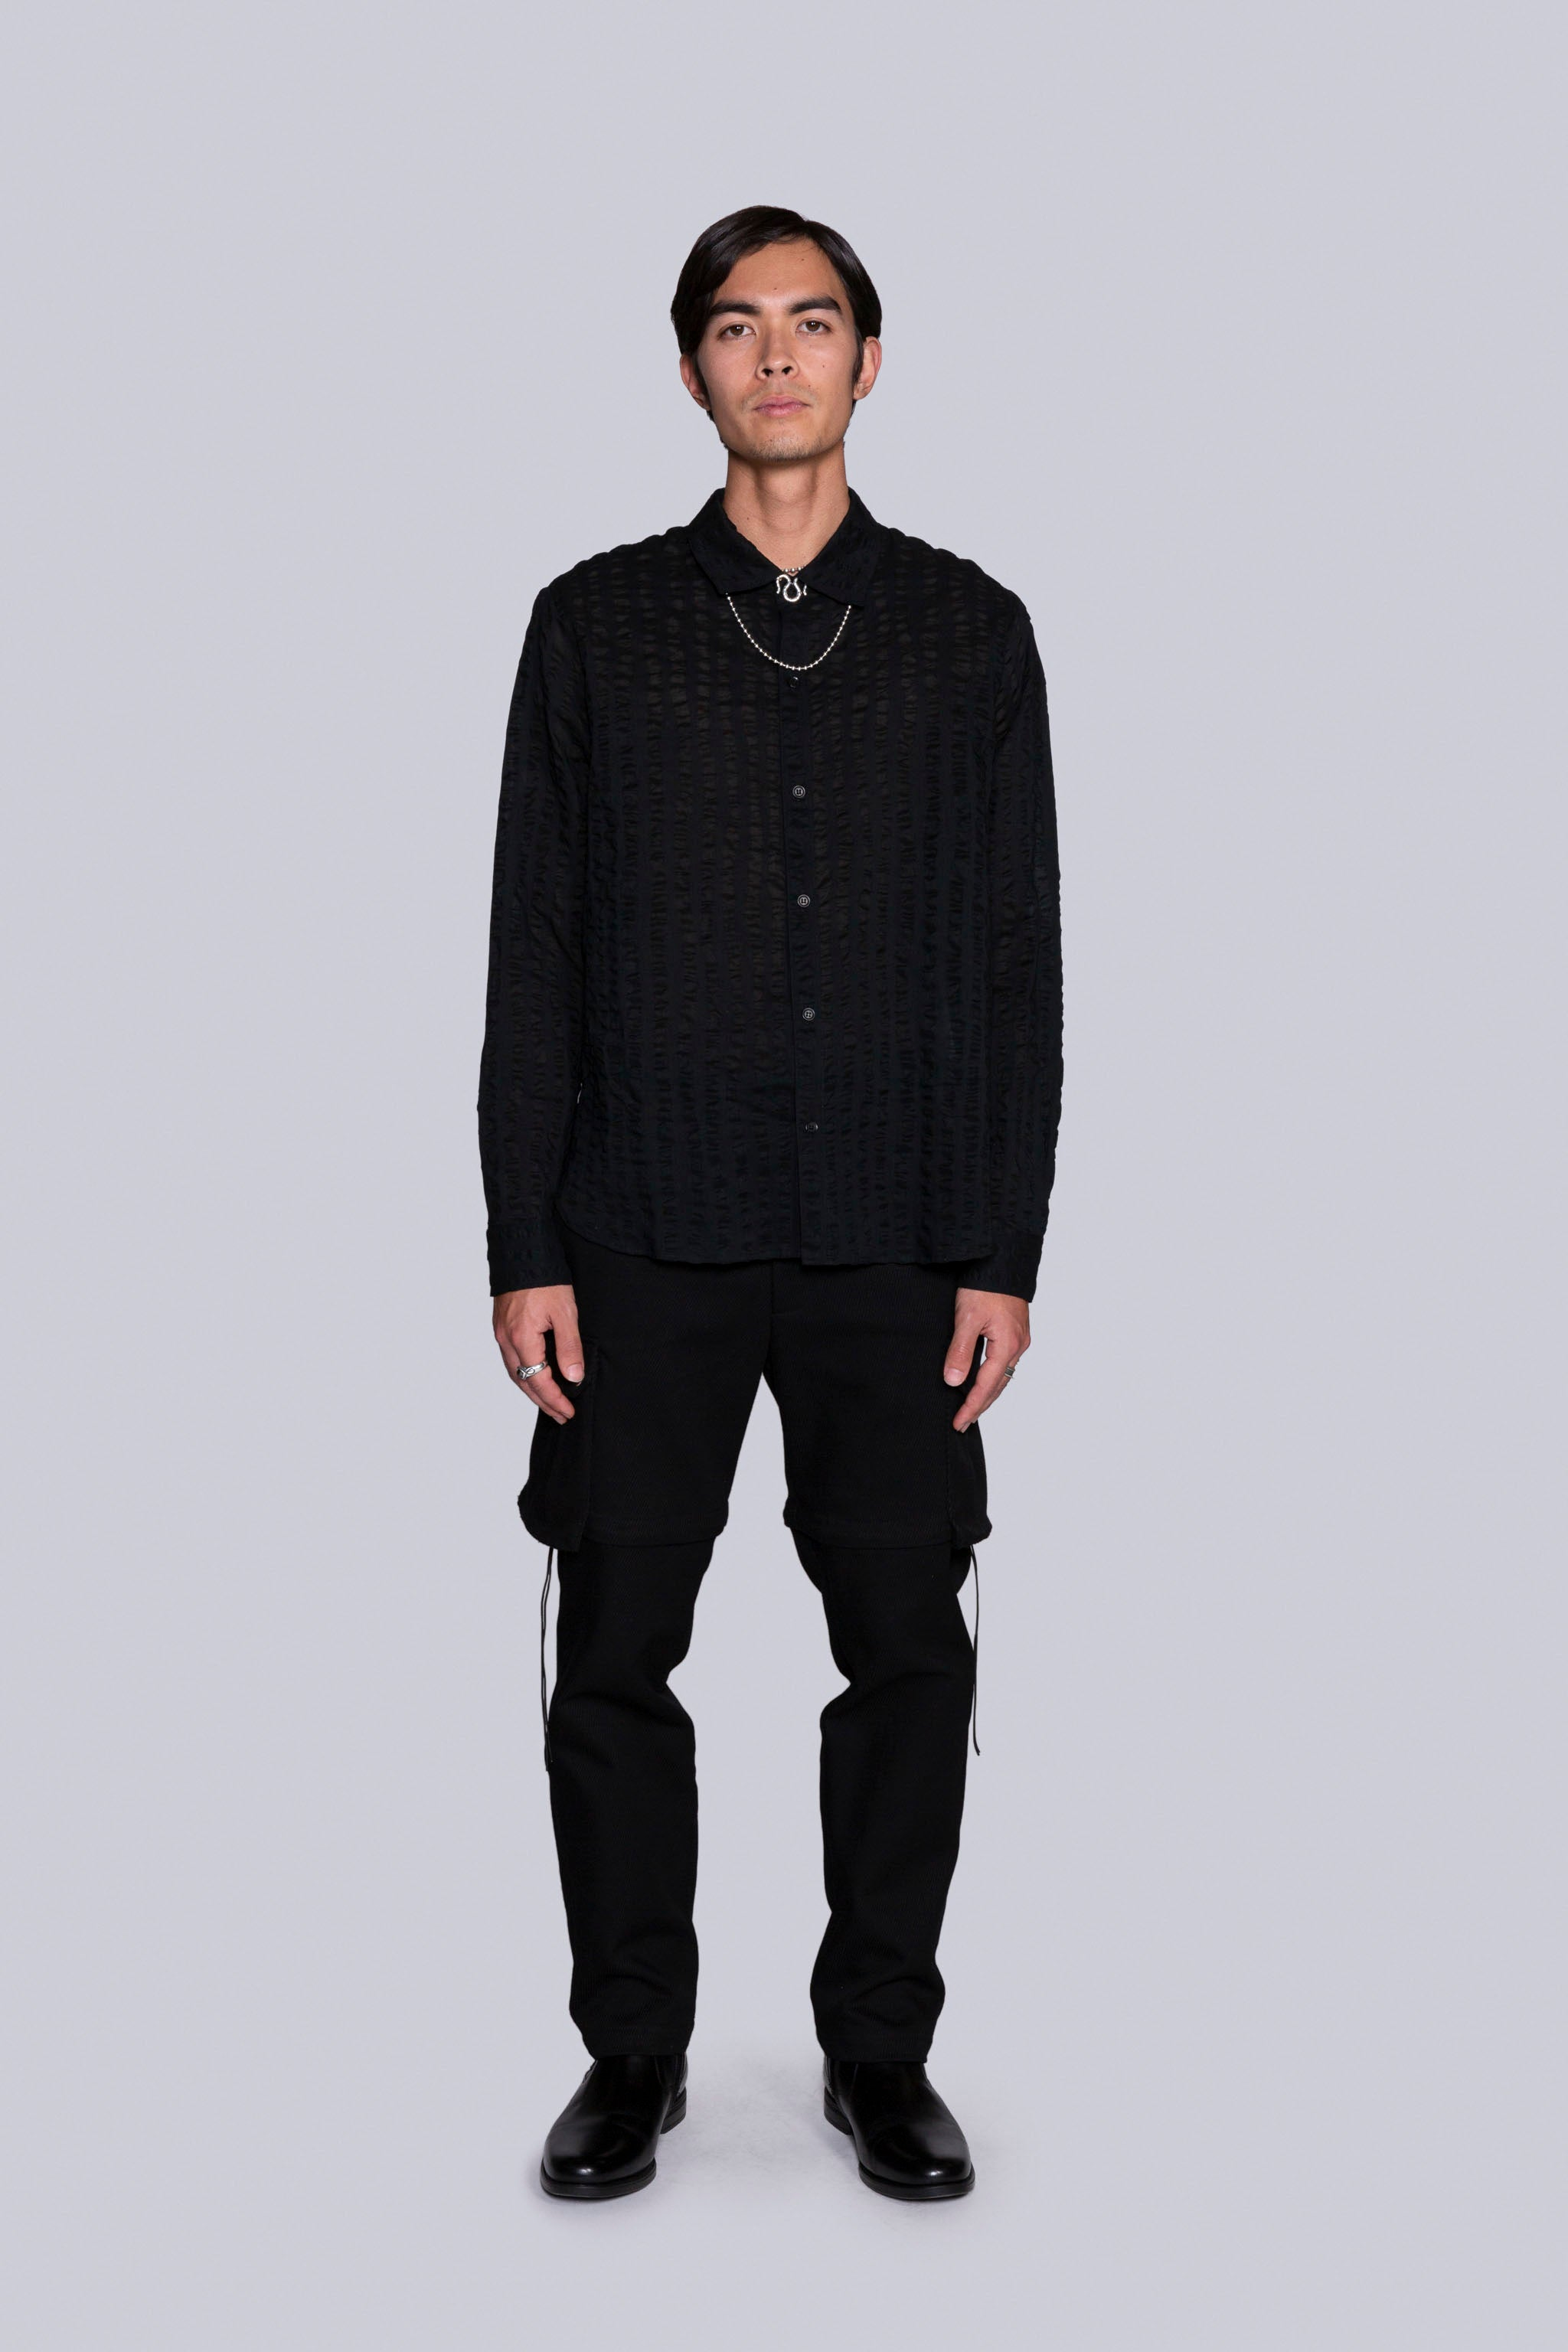 C.O.R. L/S Shirt Black Seersucker